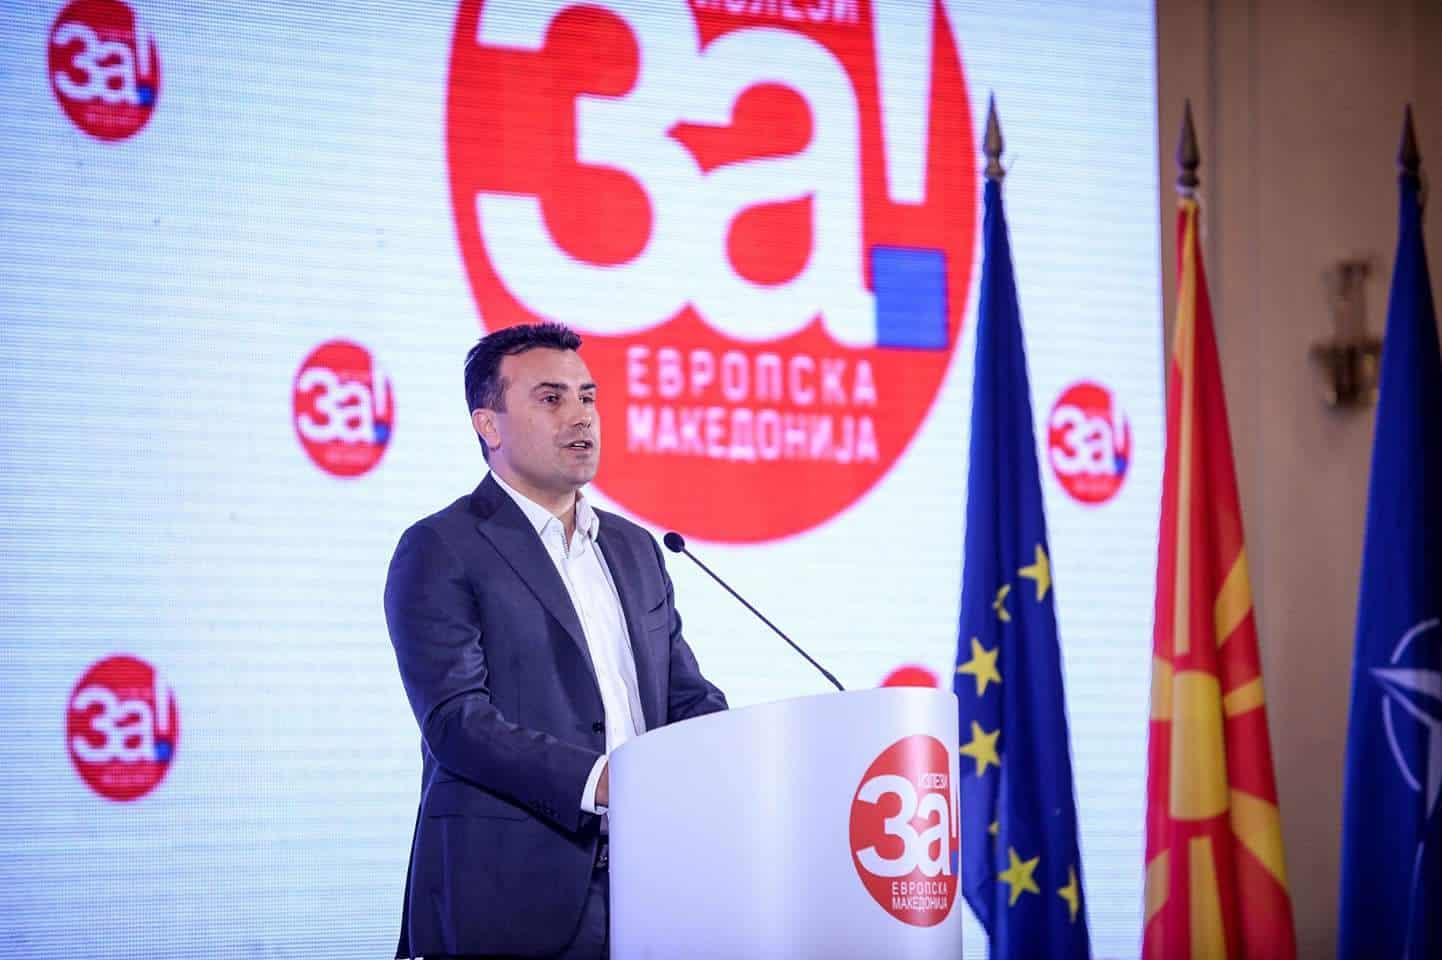 Over 90% Back Macedonia's Name Change to 'North Macedonia' But Low Turnout Mars Referendum